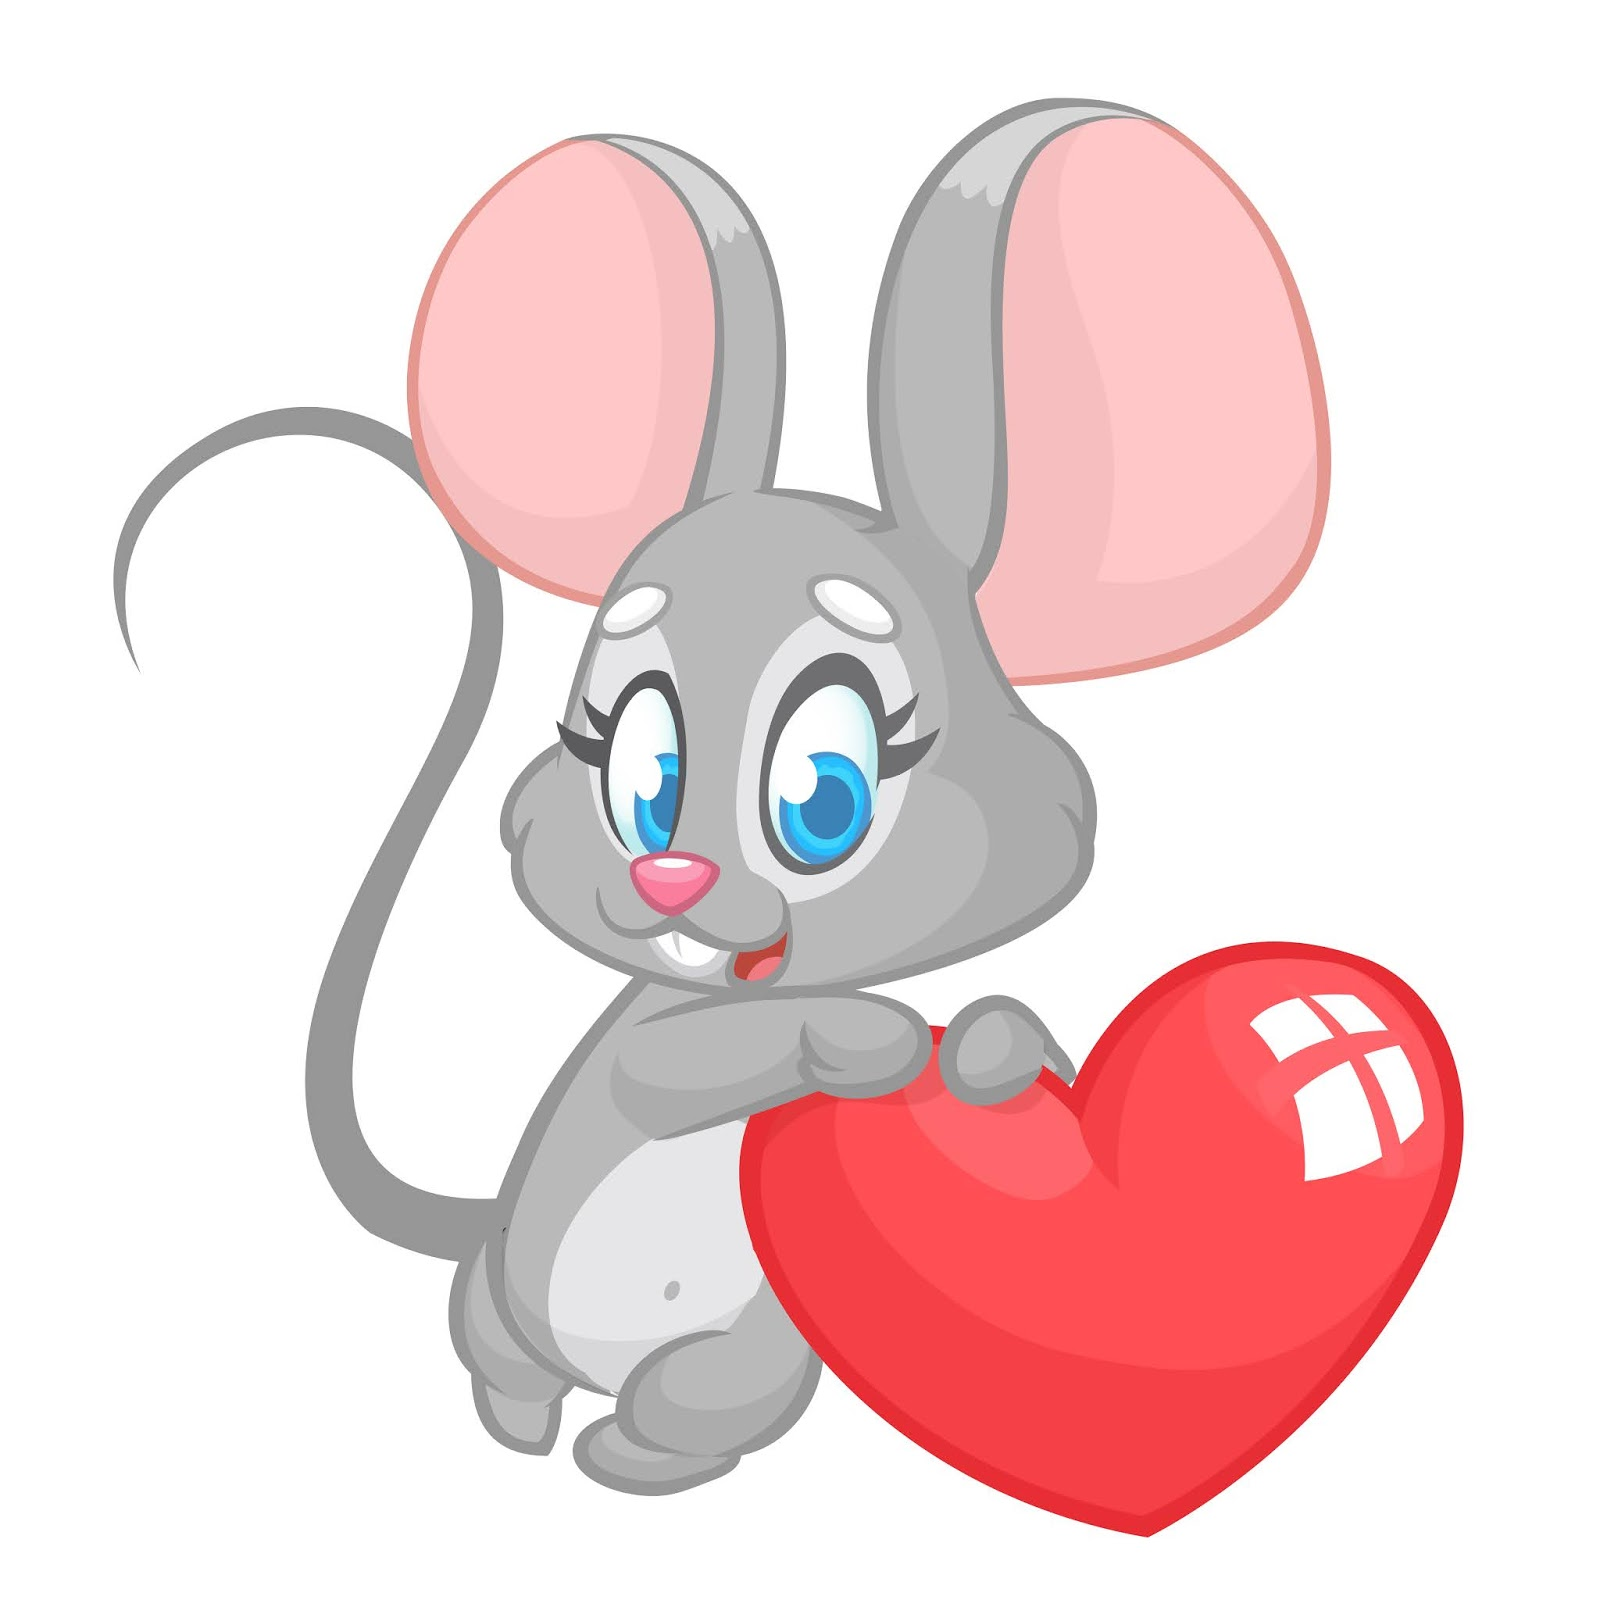 Cartoon Cute Mouse Holding Love Heart Free Download Vector CDR, AI, EPS and PNG Formats